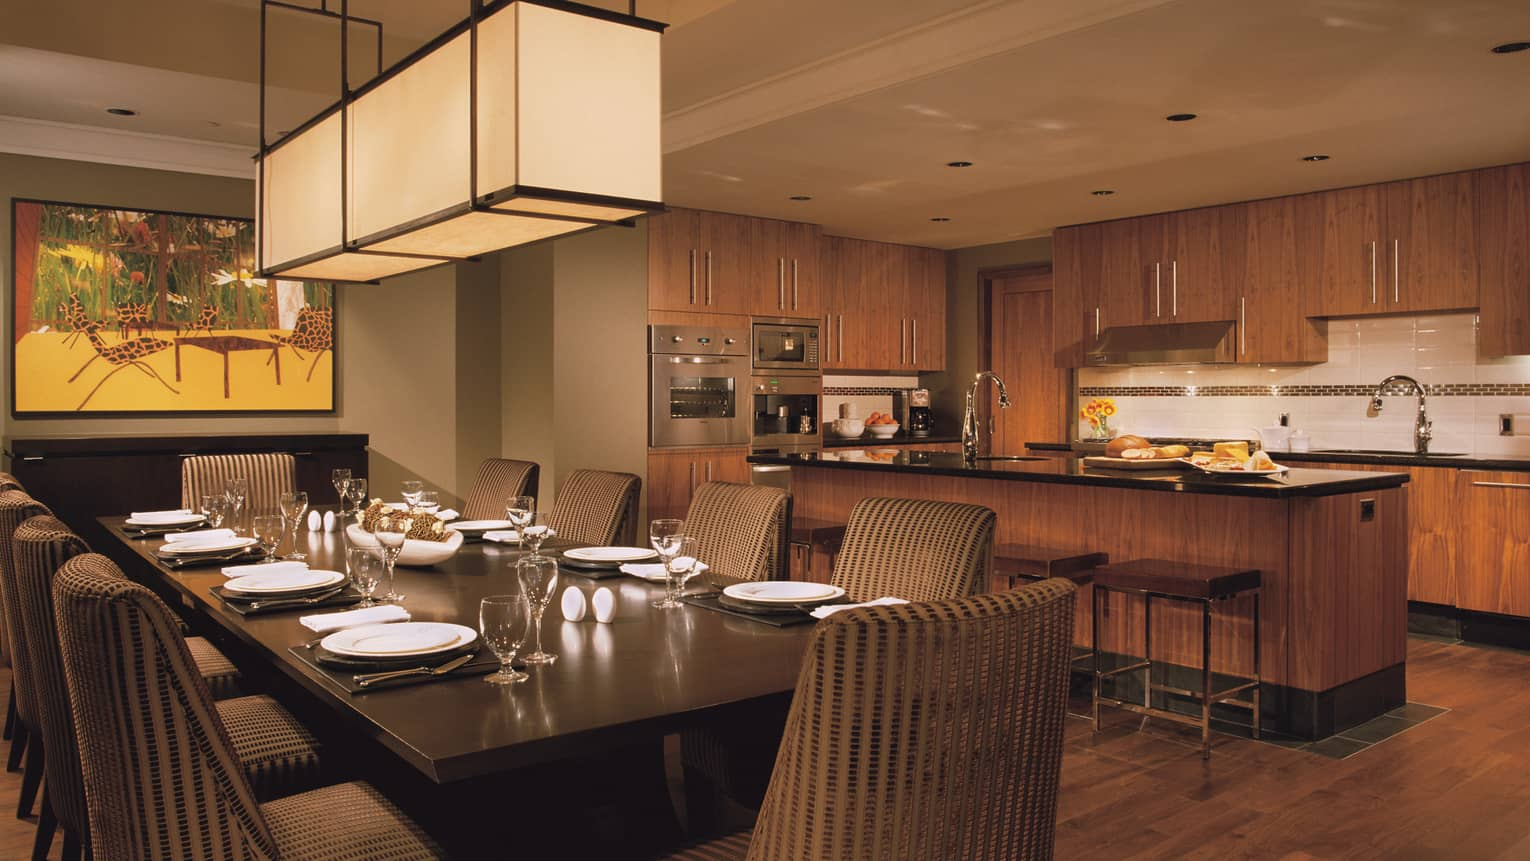 Long lantern chandelier over private dining table in front of kitchen counter with bread, cheese